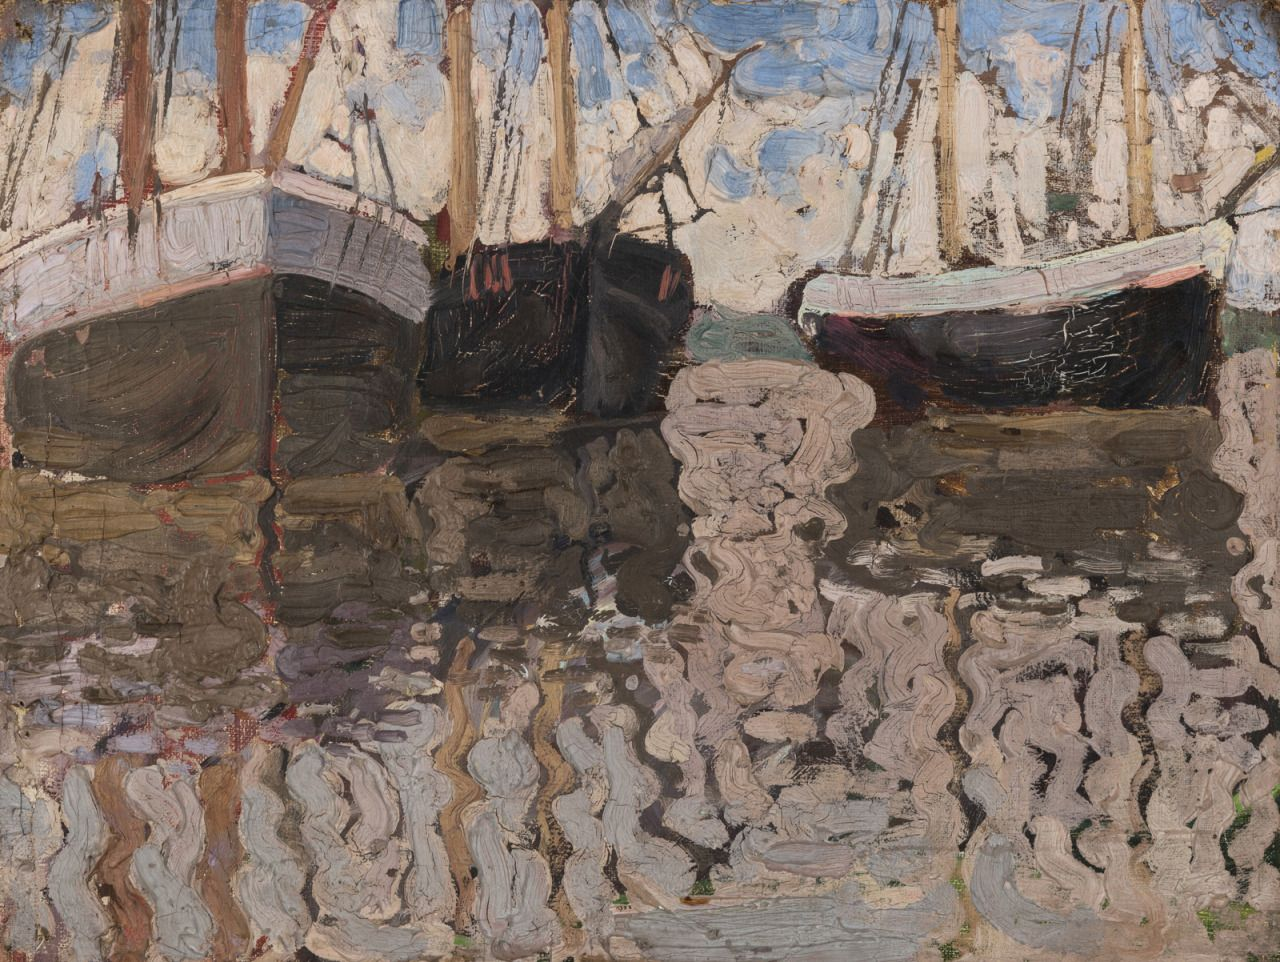 """amare-habeo: """"  Vladimir Baranov-Rossiné (Russian-French, 1888–1944) A View of Sail Boats, 1905/08 Oil on canvas laid on board, 33.5 x 44 cm """"I can never come up with what to say so here are some words that I love from Leonard Cohen:ring the bells that still can ring forget your perfect offering- there is a crack in everything that's how the light gets in ~leonard..."""